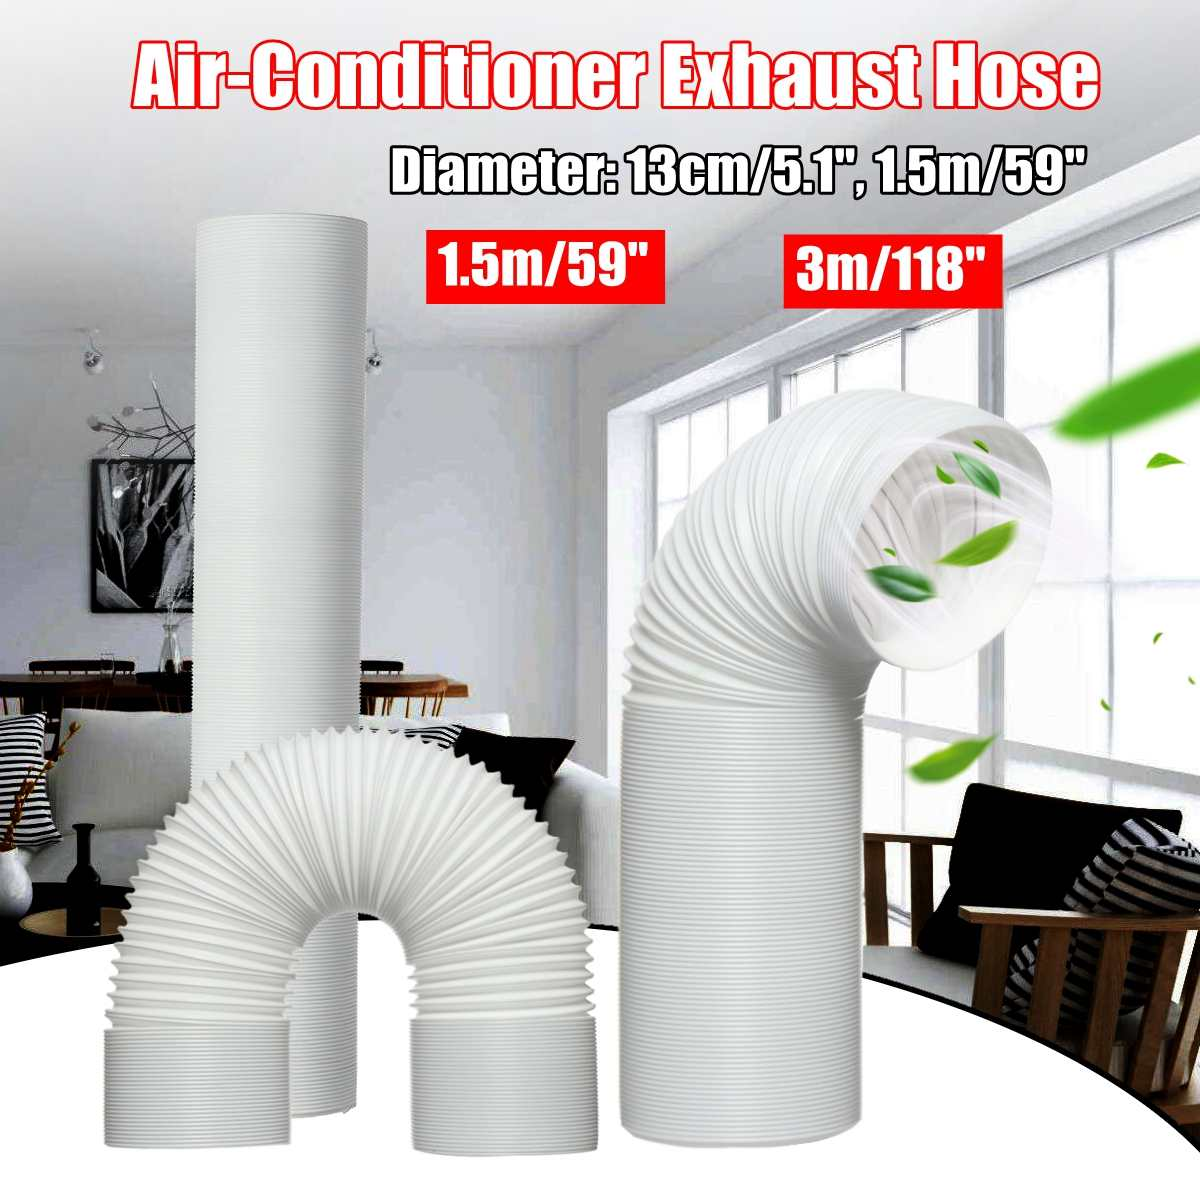 Portable 59 /118 Air Conditioner Window Pipe Interface Exhaust Hose TubePortable 59 /118 Air Conditioner Window Pipe Interface Exhaust Hose Tube